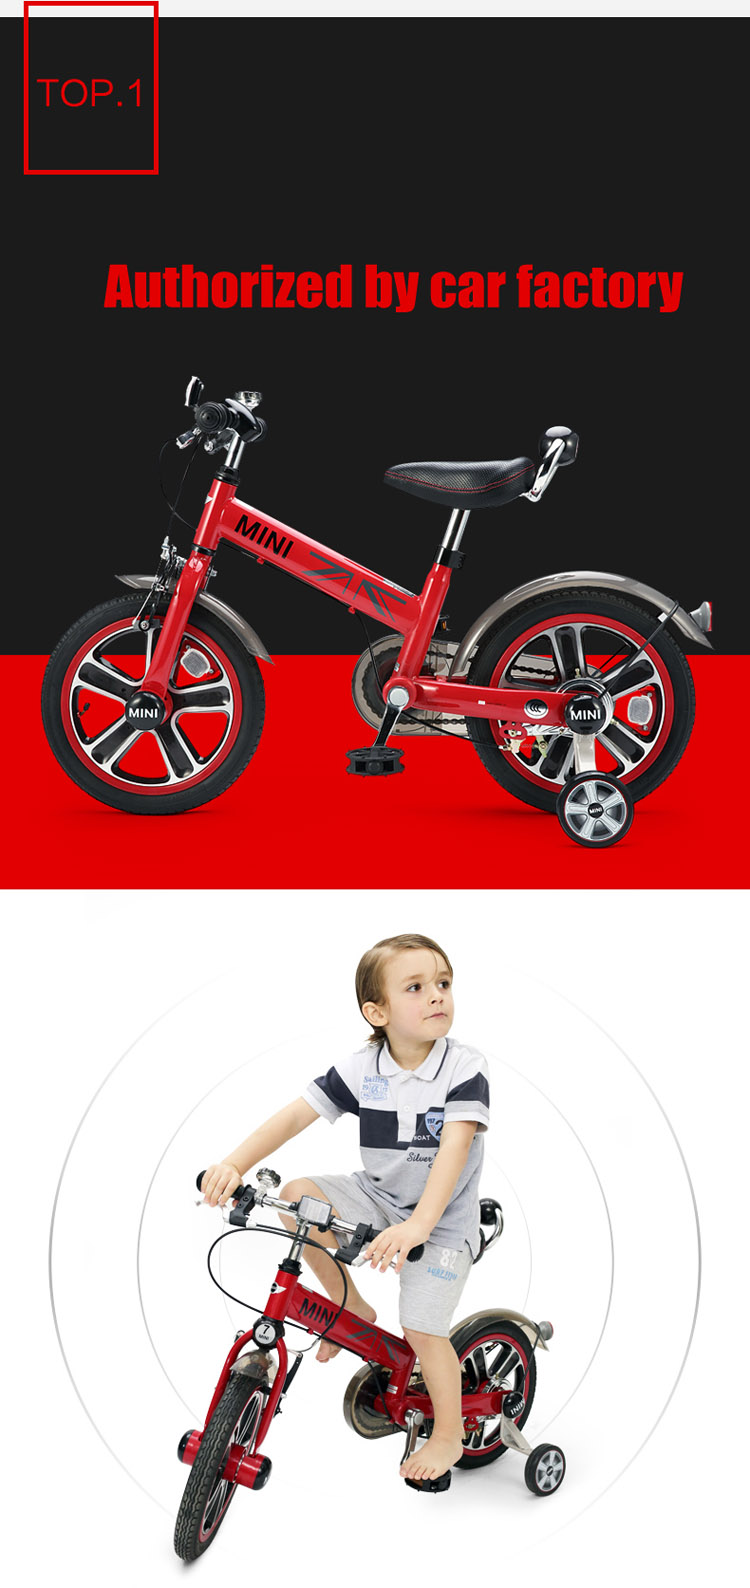 RASTAR MINI balancing bike for kid 14 inch bicycle for sale